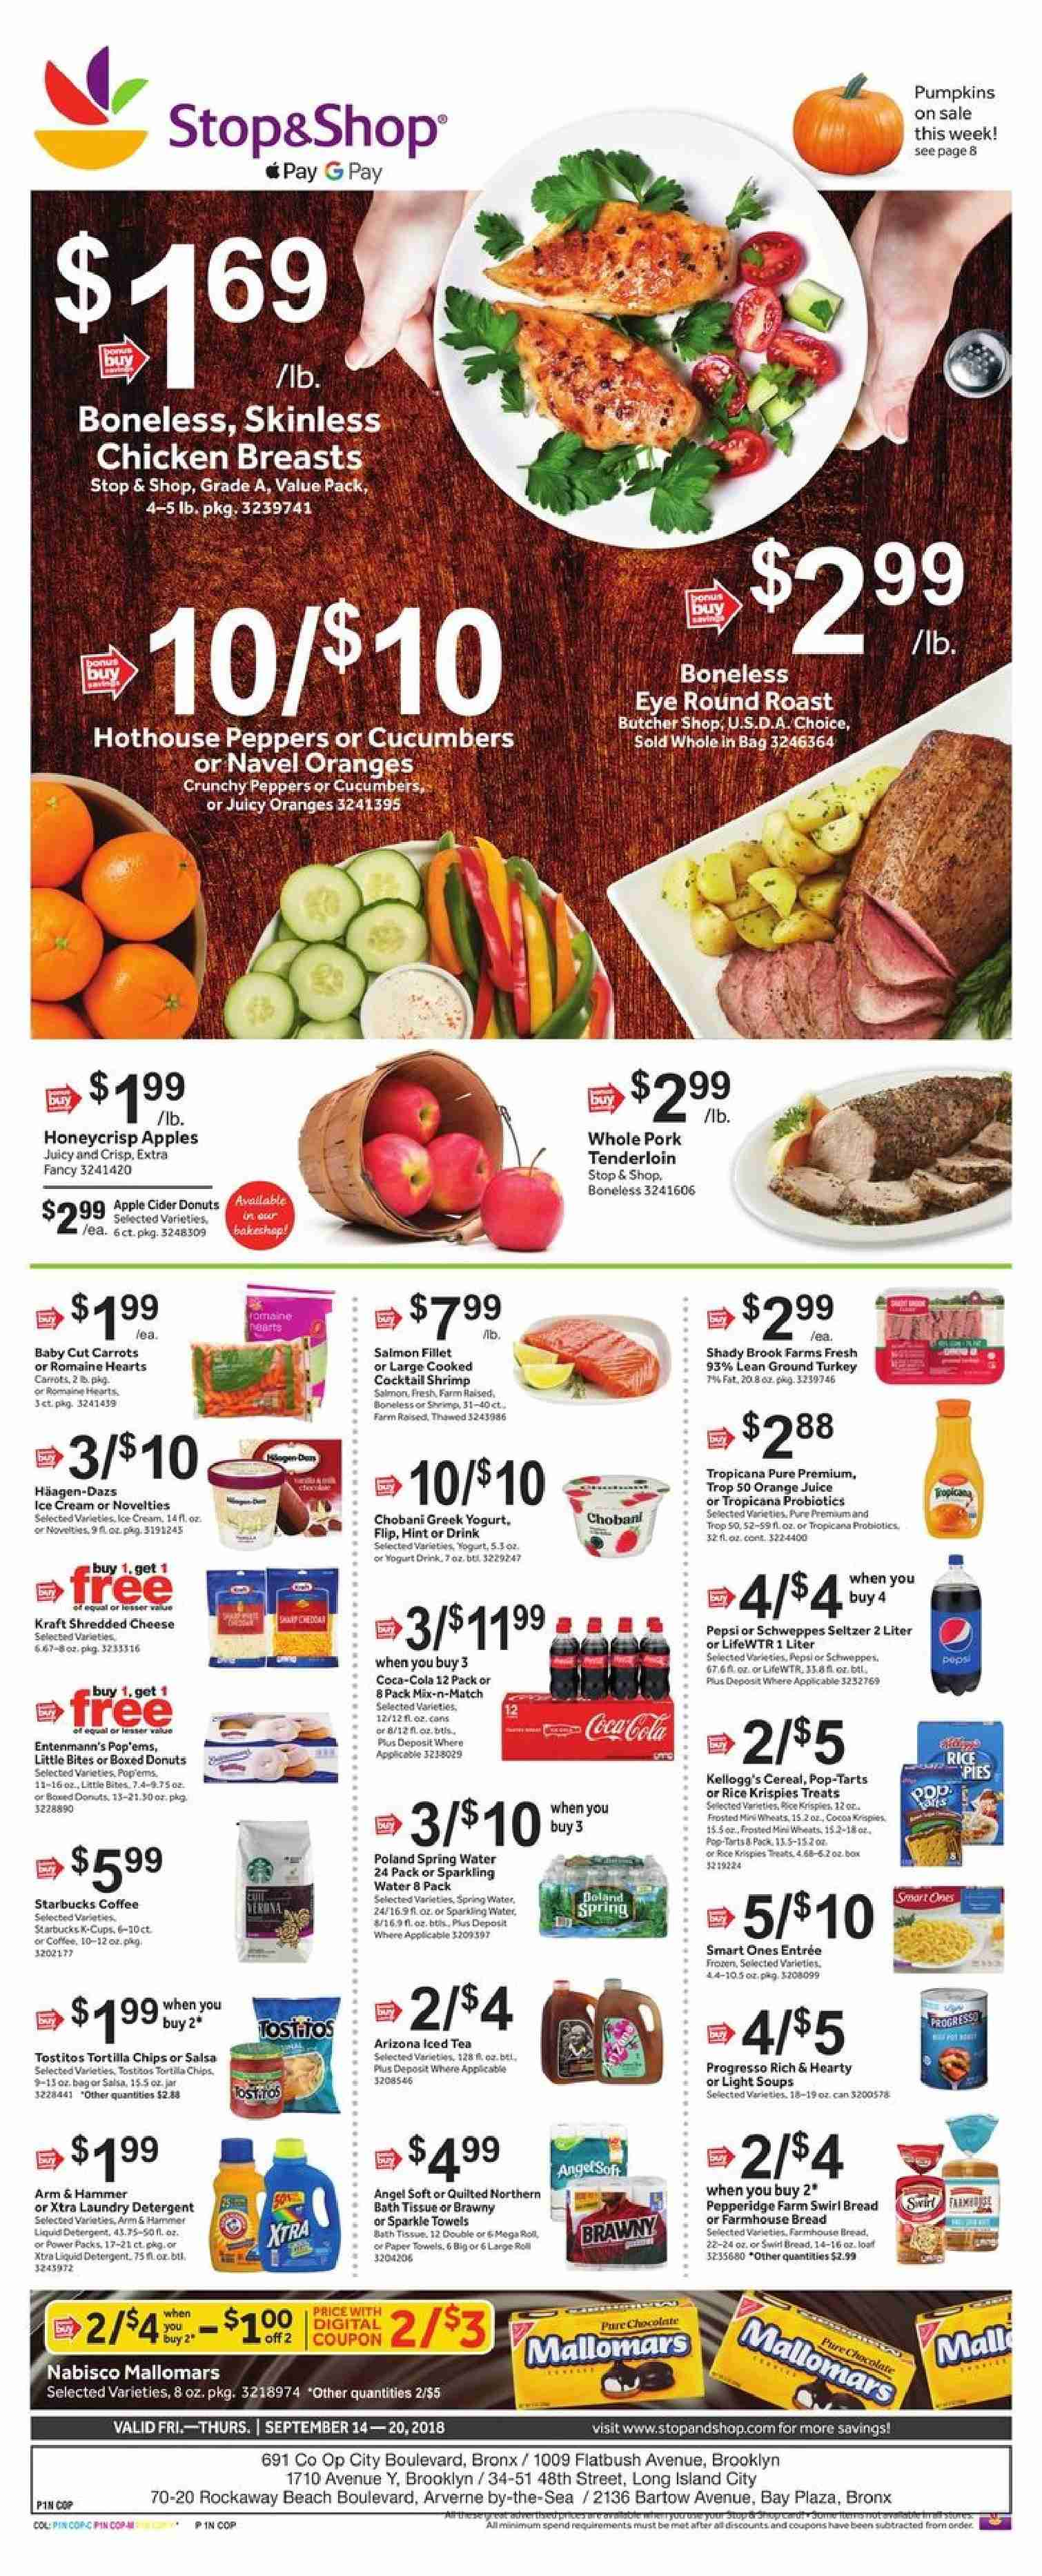 Stop & Shop Flyer  - 09.14.2018 - 09.20.2018. Page 1.